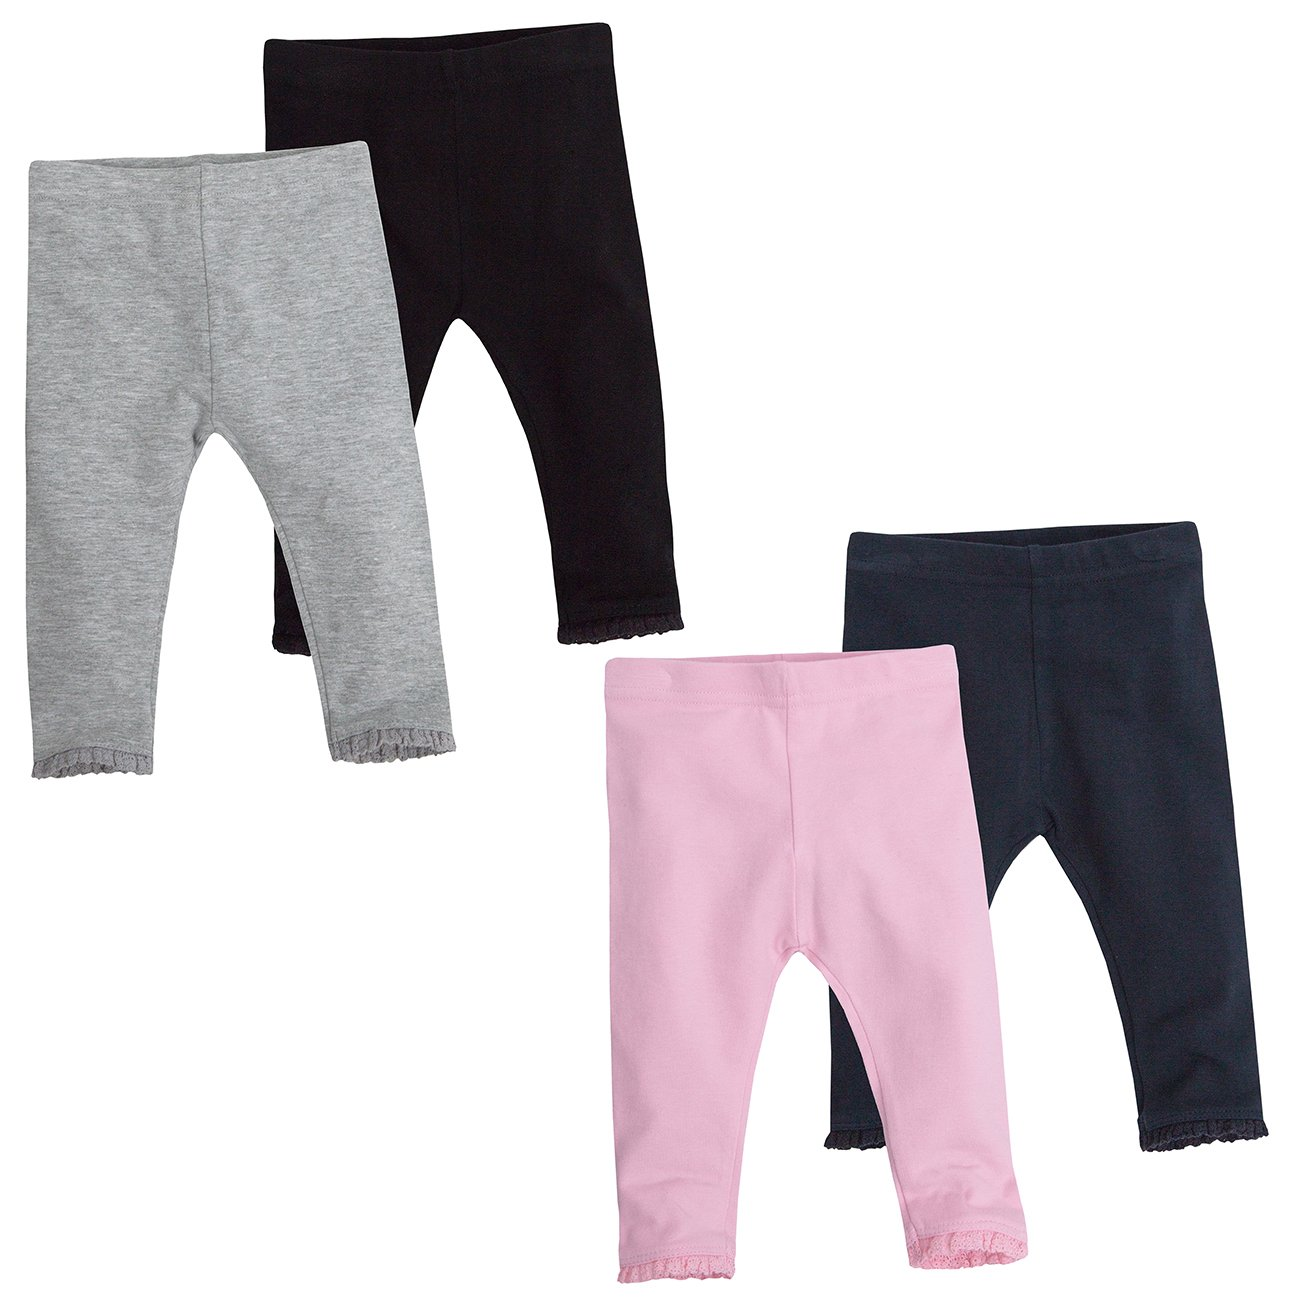 BABY TOWN Babytown Baby Girls Plain Leggings 4-Pack with Lace Trim